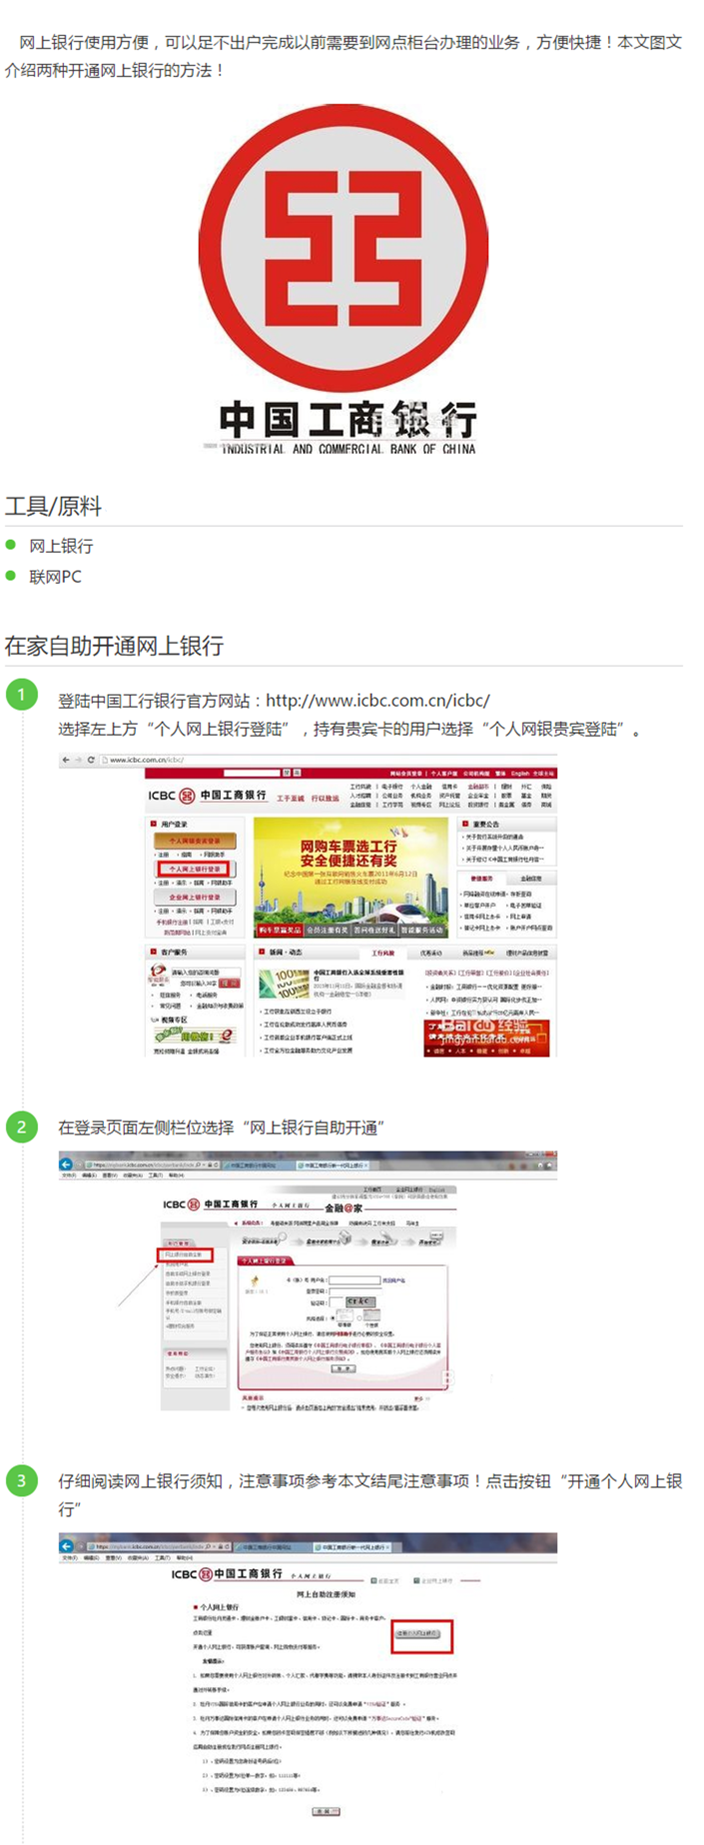 http://dyy.enwei.com/data/upload/shop/article/05429736139001758.png